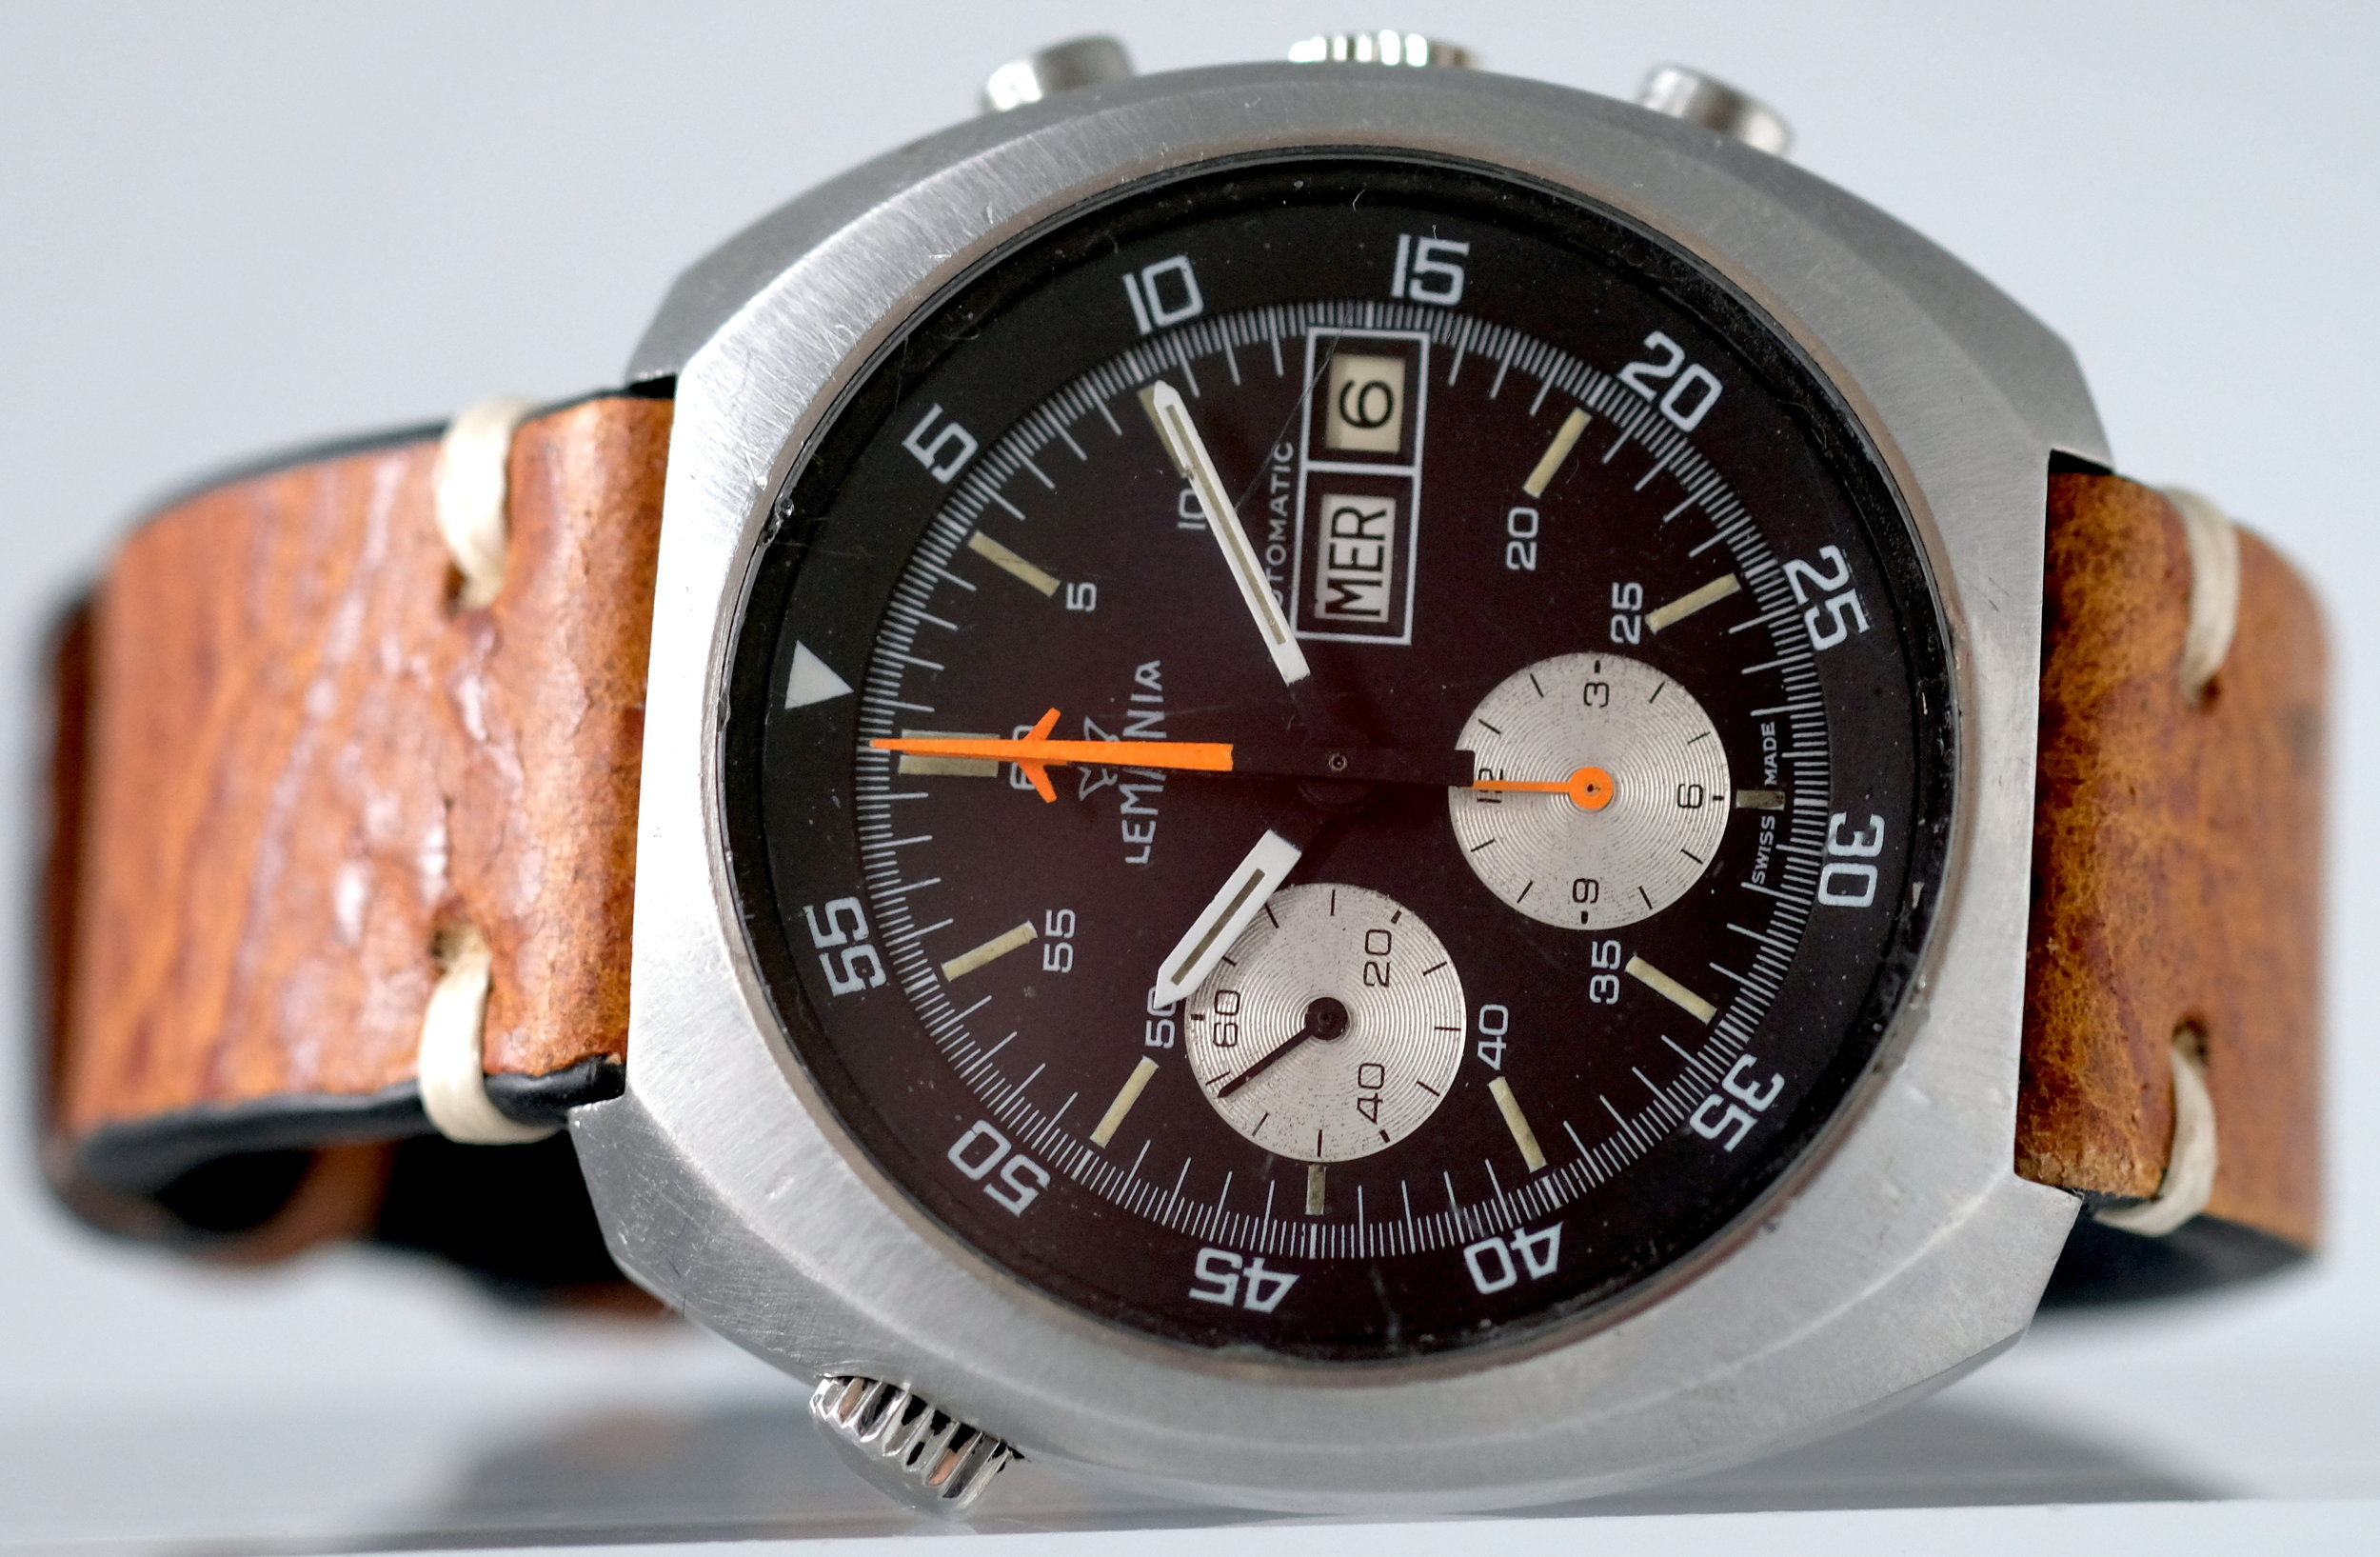 Lemania Chronograph w/ Caliber 5100*  SOLD